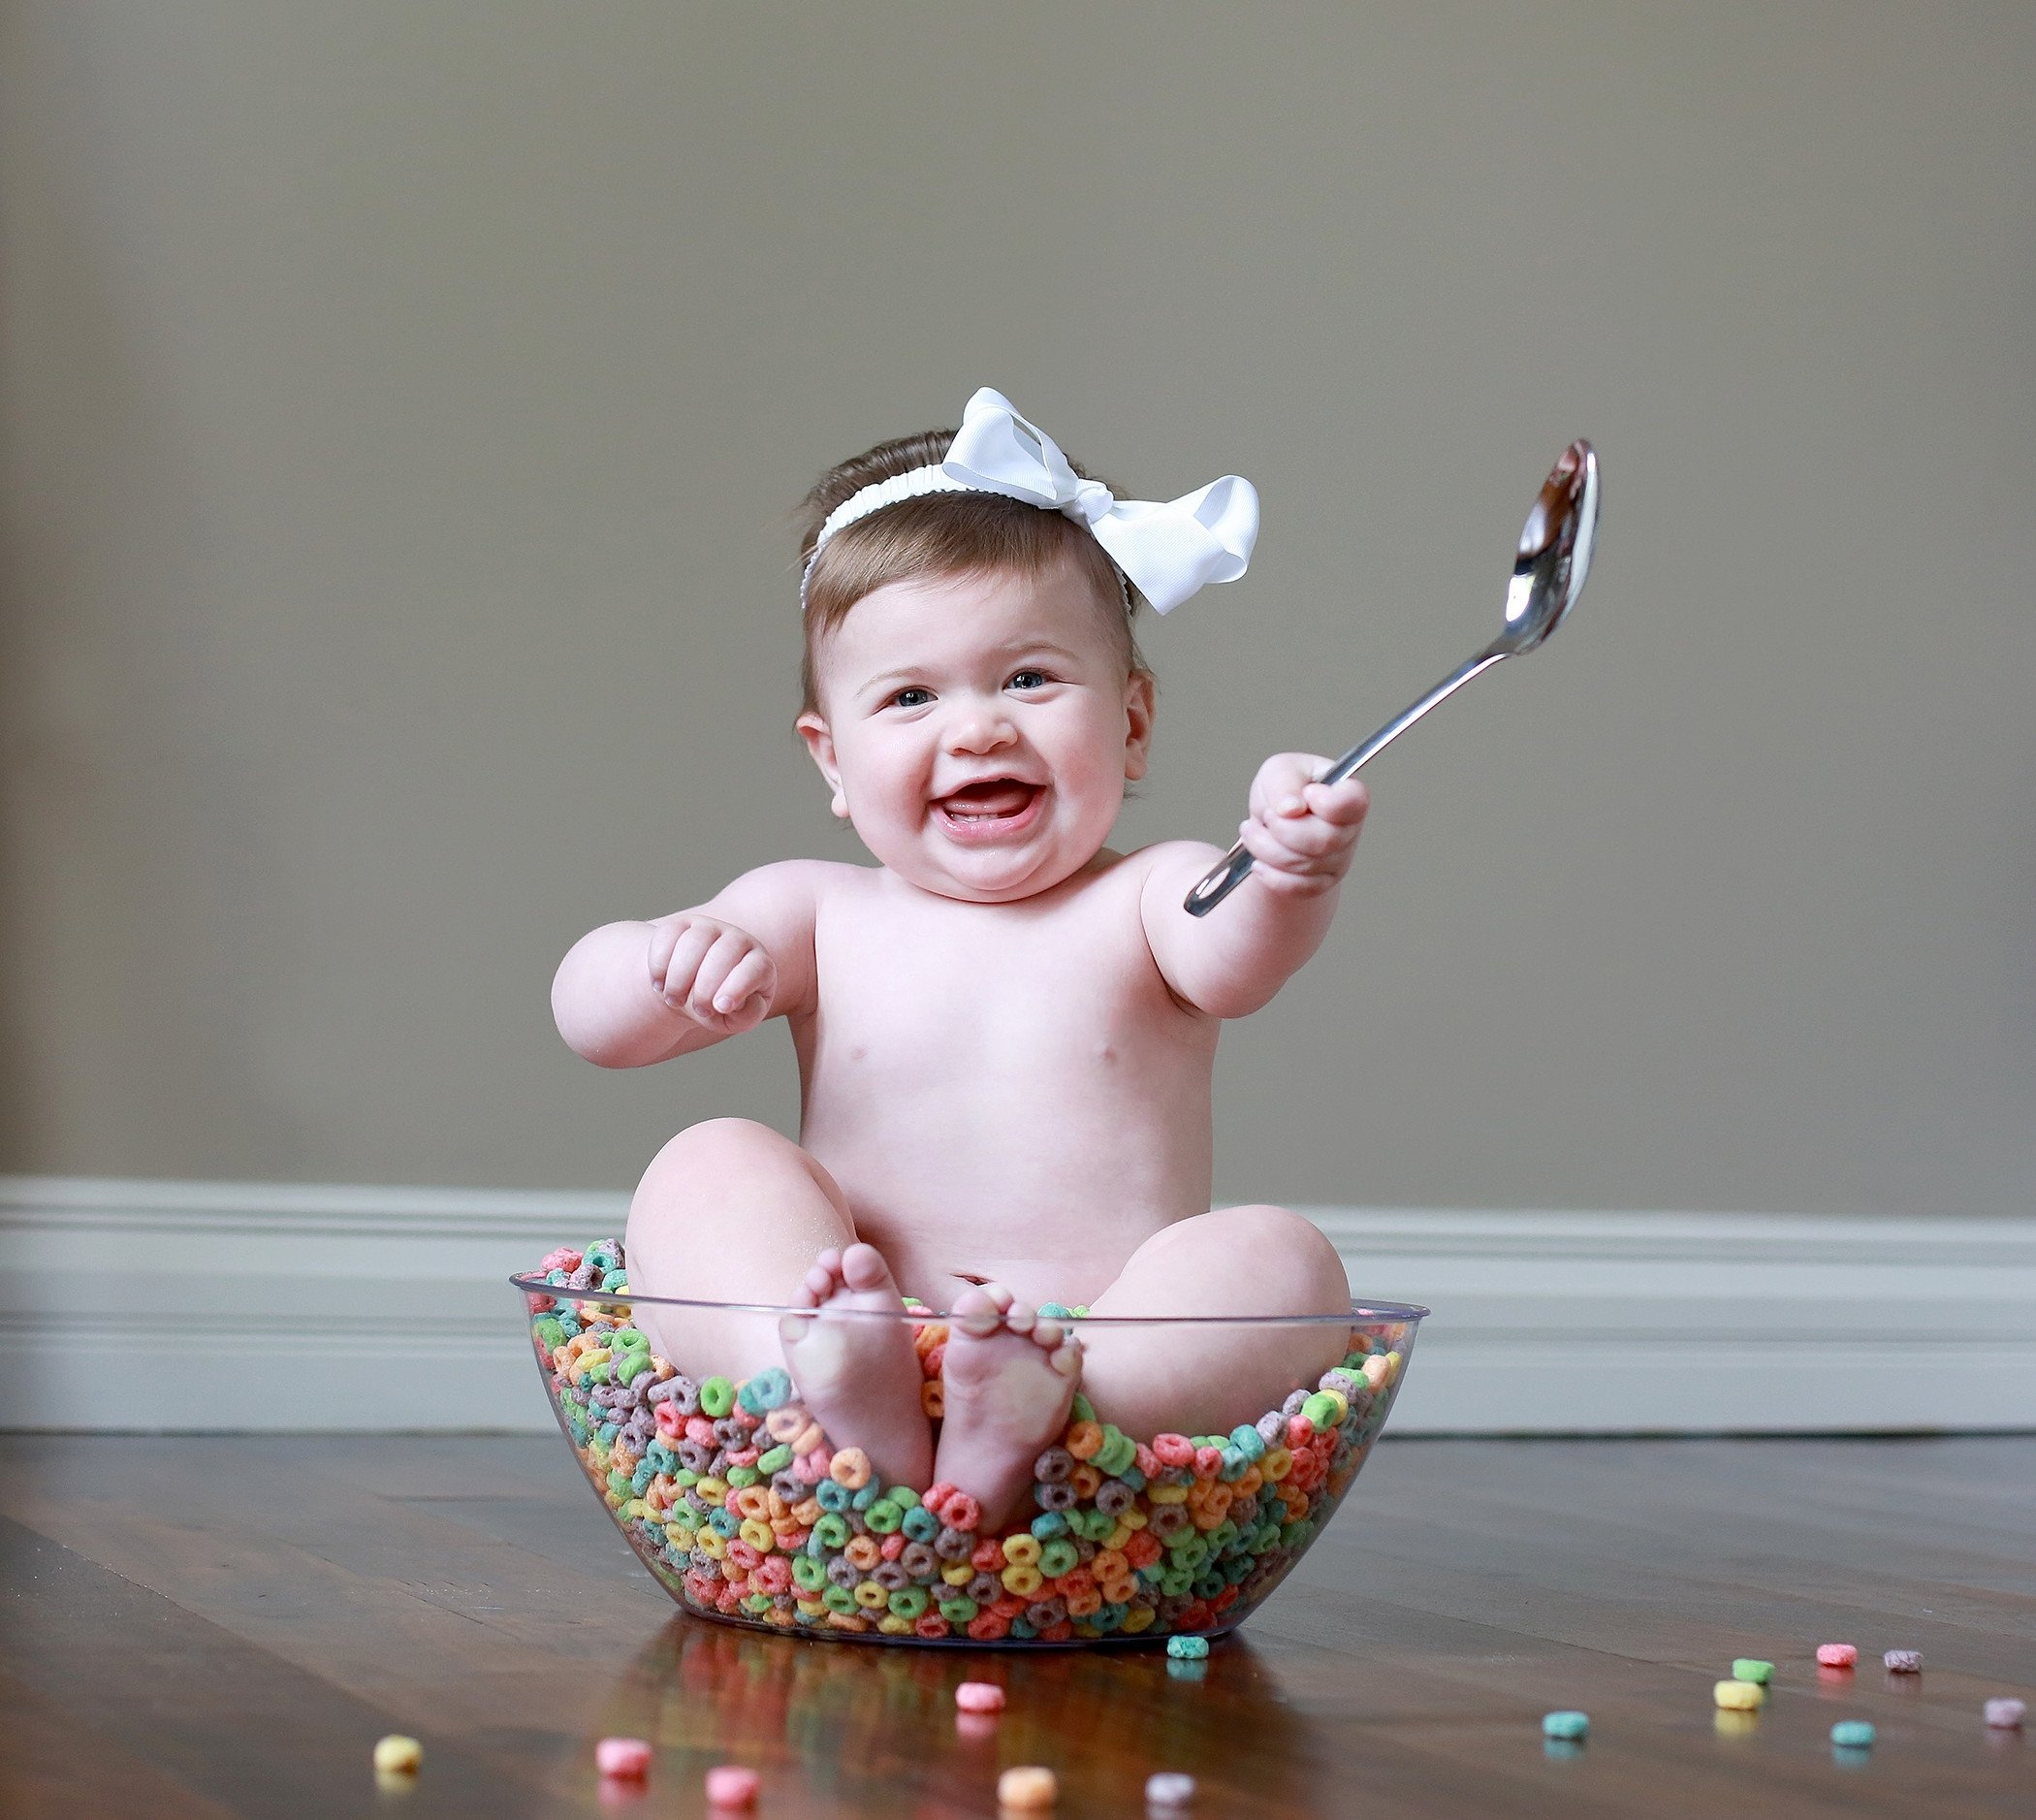 10 Stunning 6 Month Old Photo Ideas baby in a bowl of cereal sitter session ideas 6 month old baby 2021